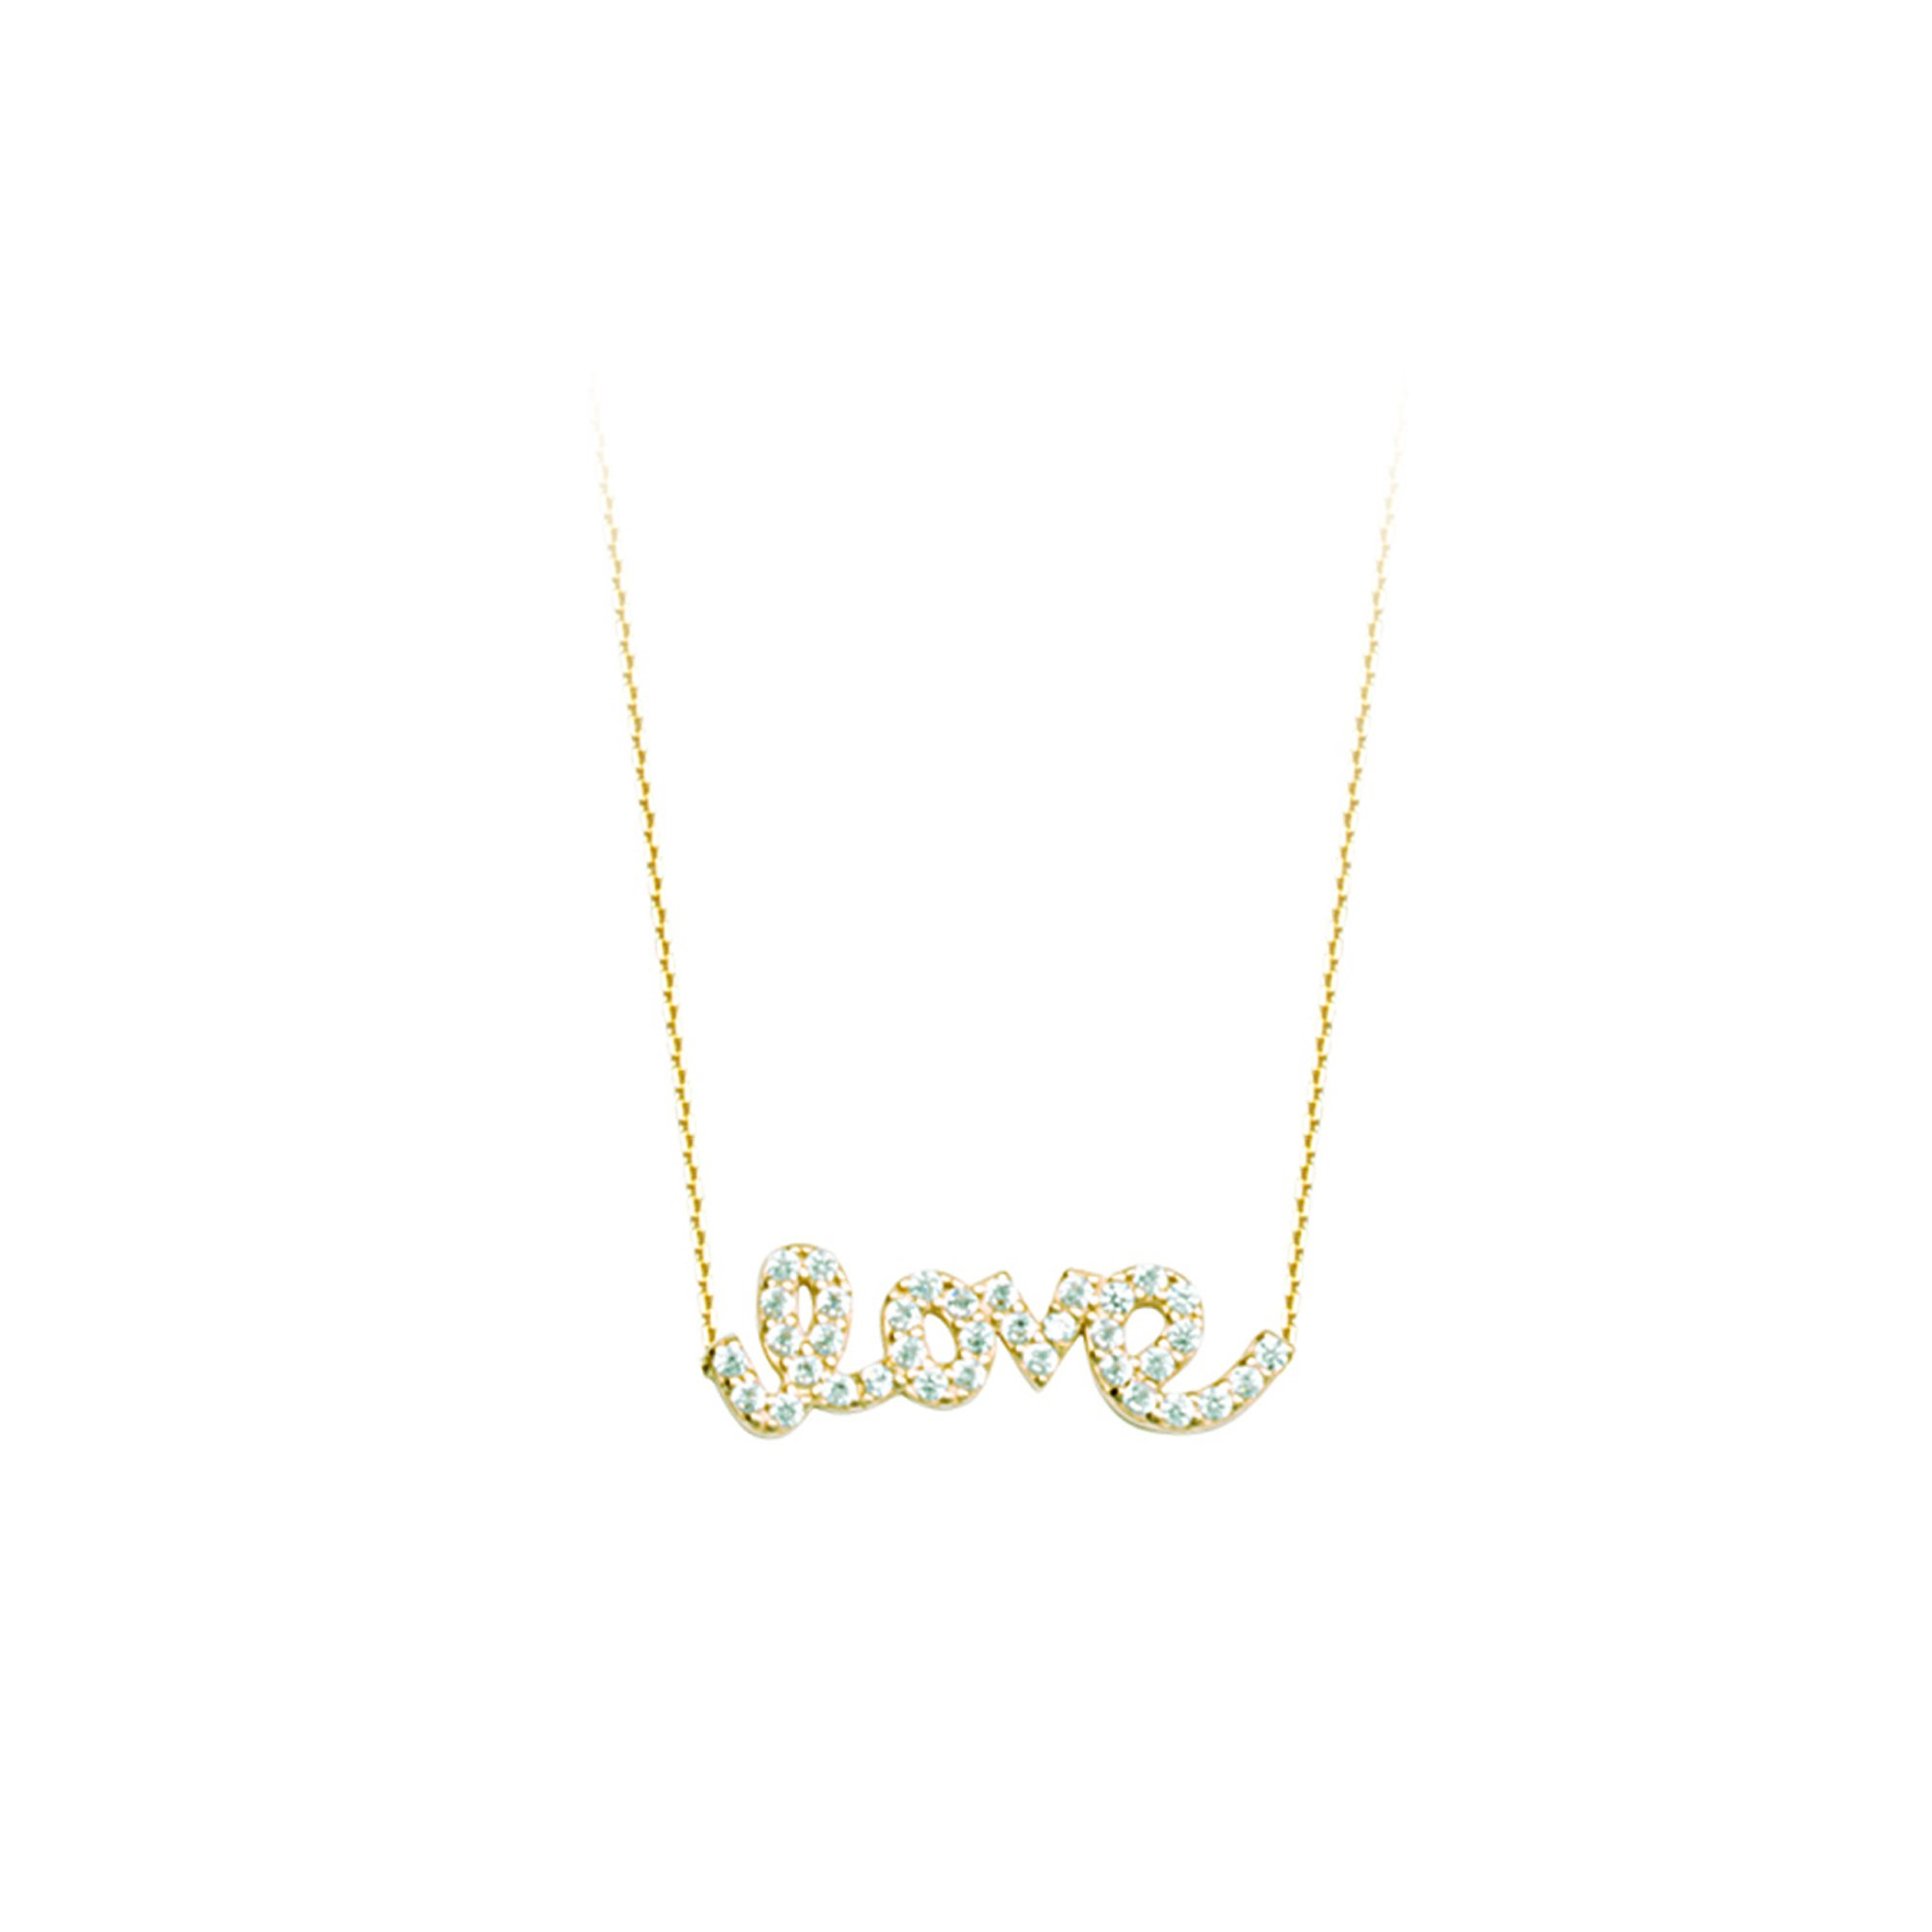 LOVE NECKLACE, 14KT GOLD & CZ LOVE NECKLACE 18'' INCHES